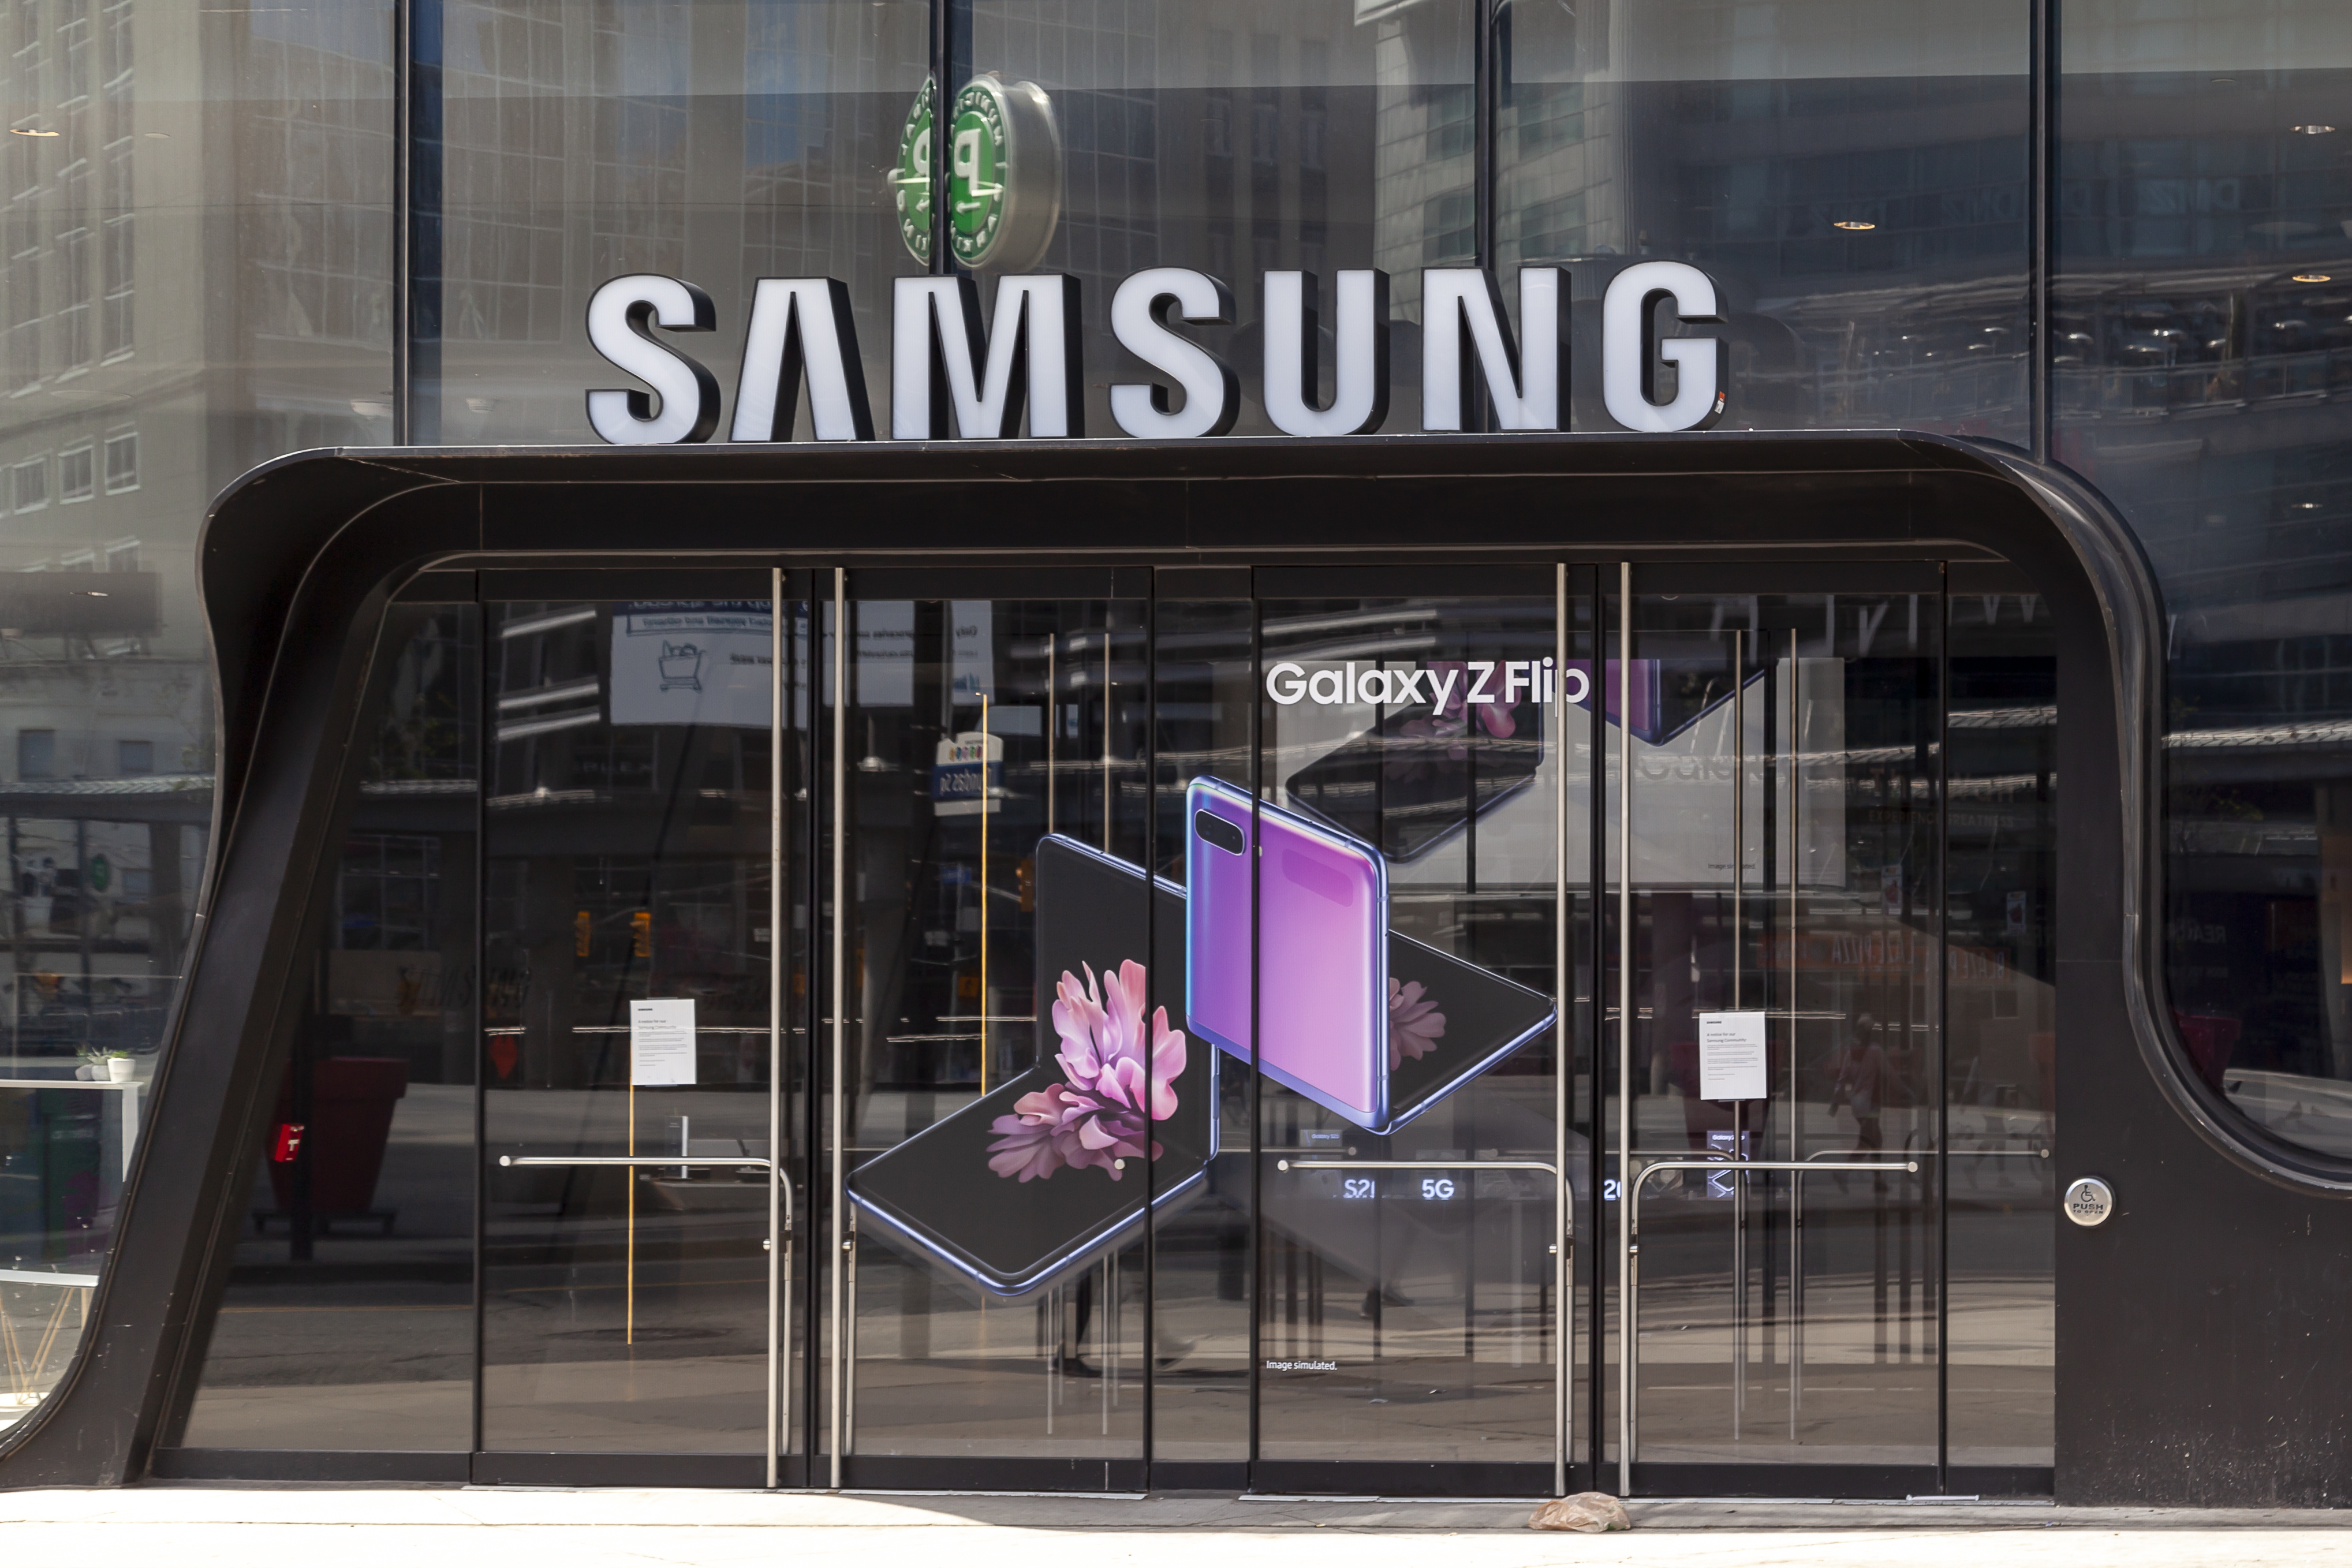 Samsung posts record-high revenue thanks to its chip and mobile businesses